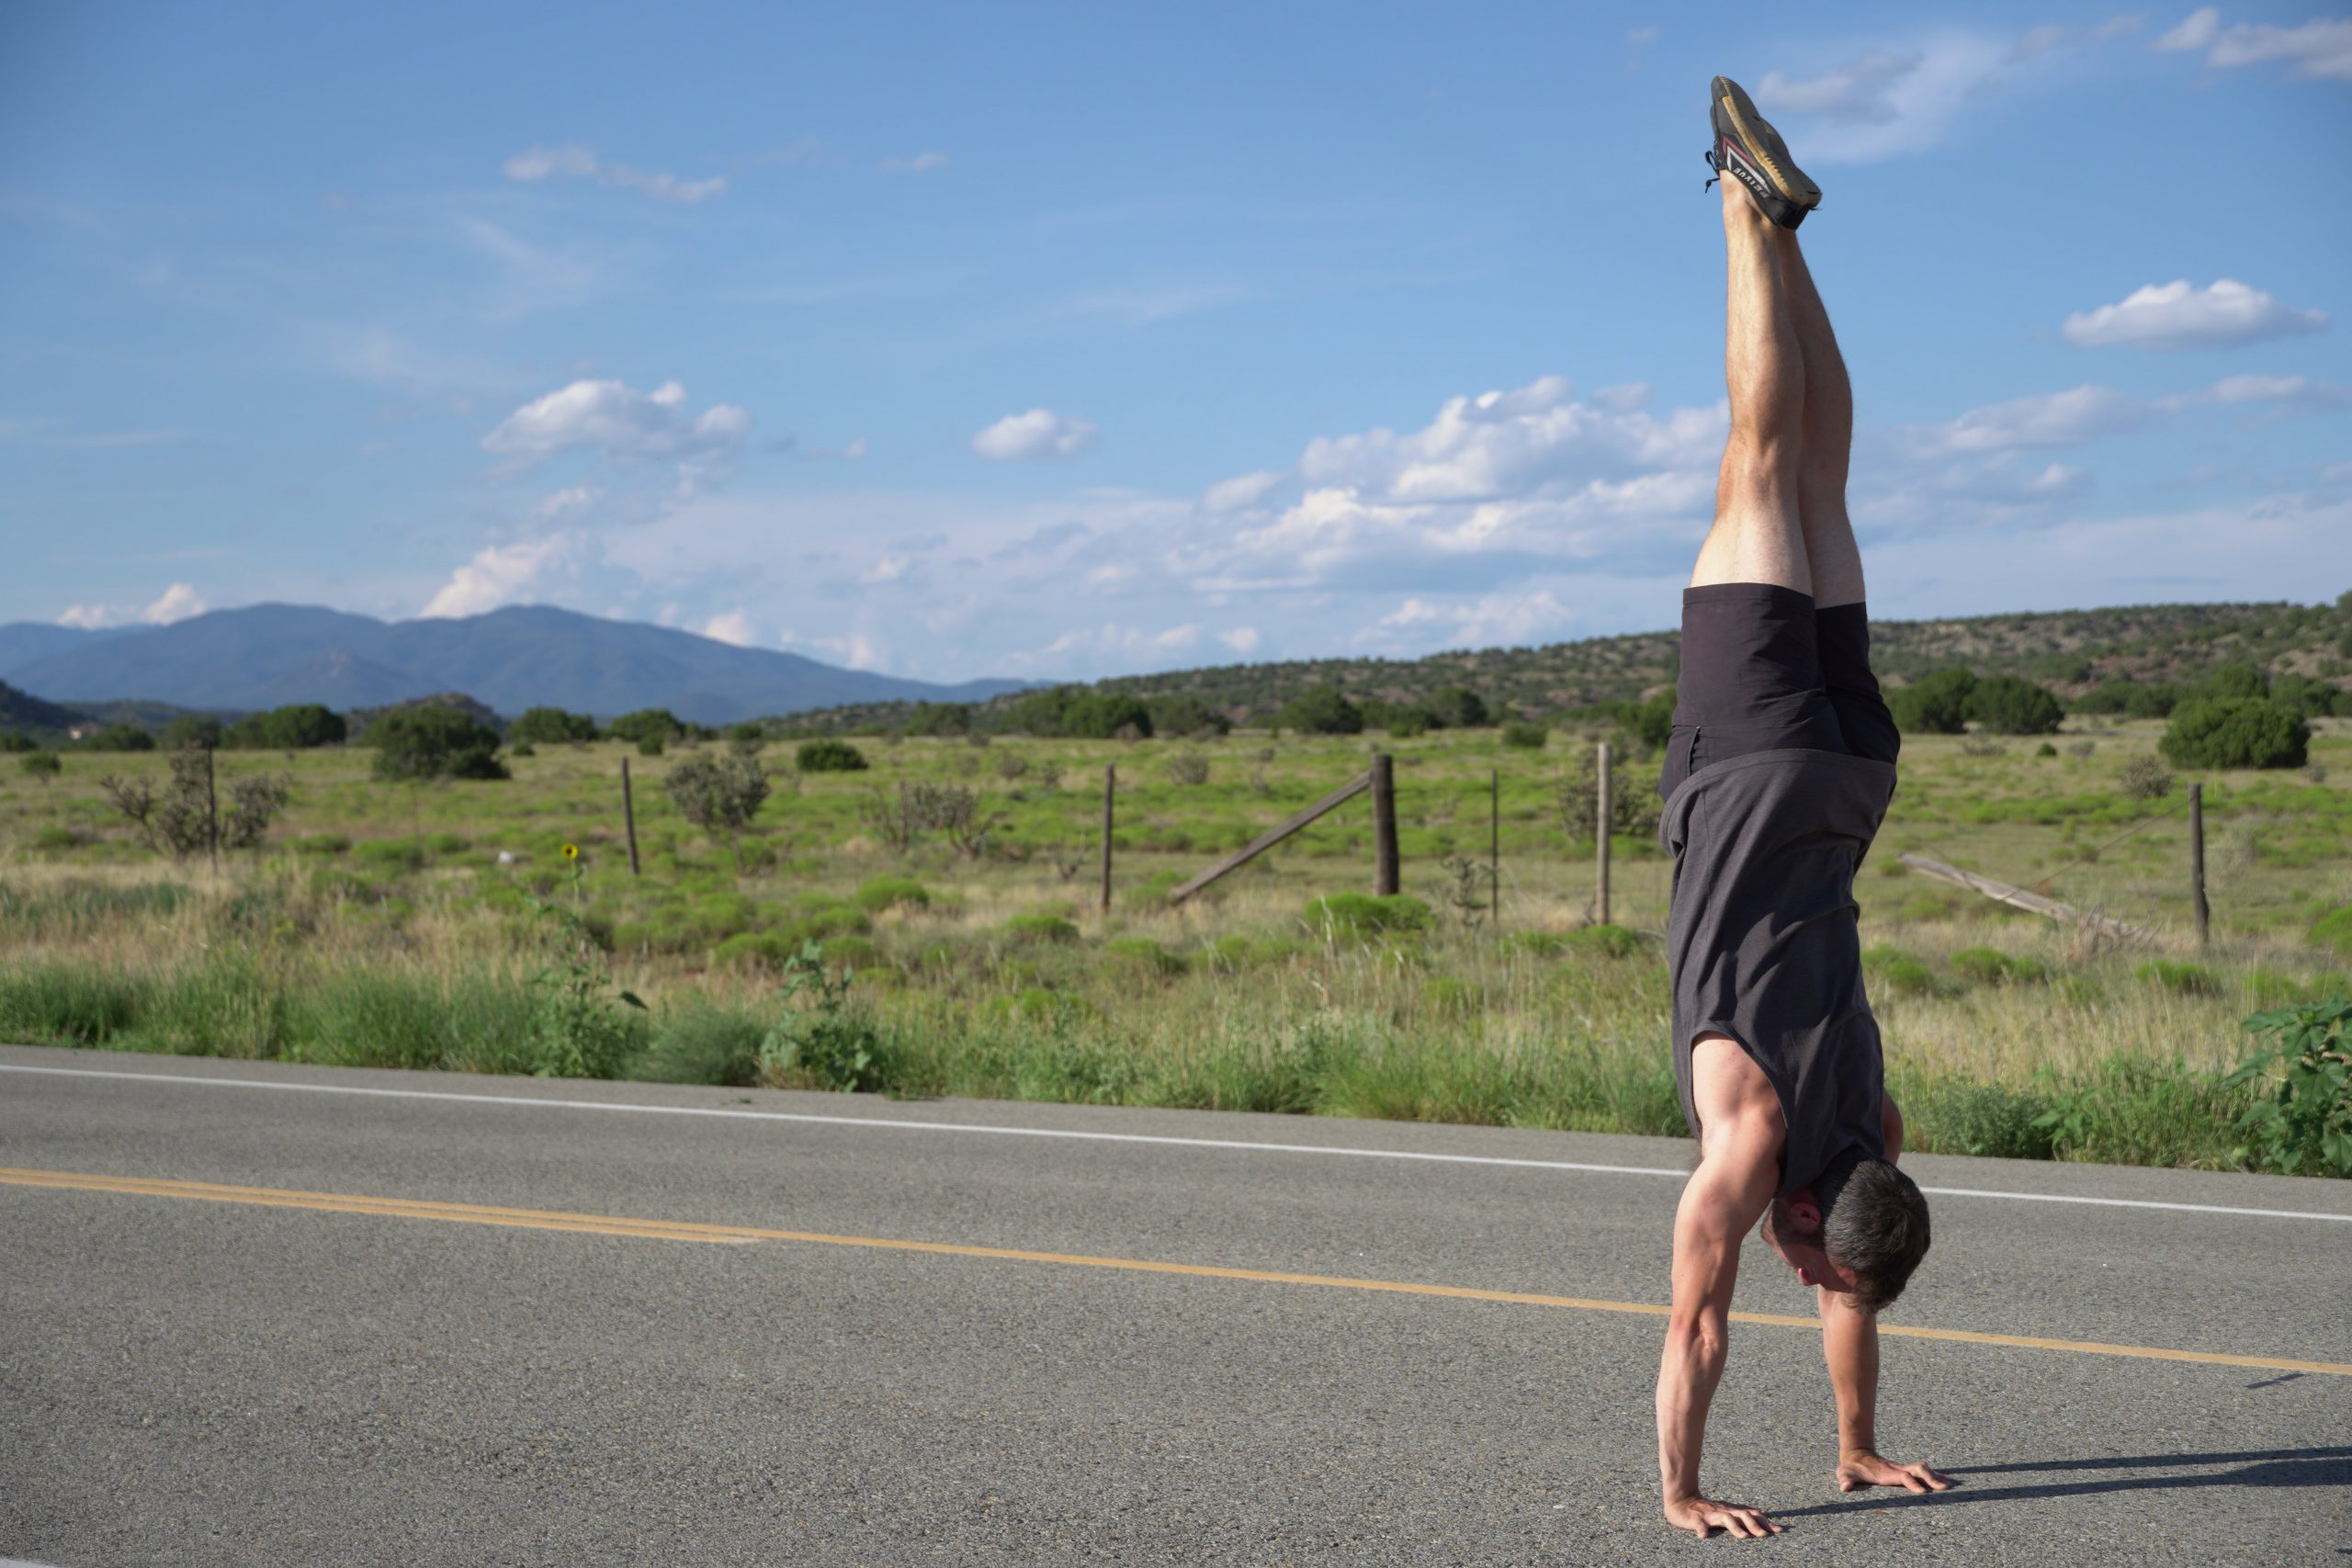 Le handstand